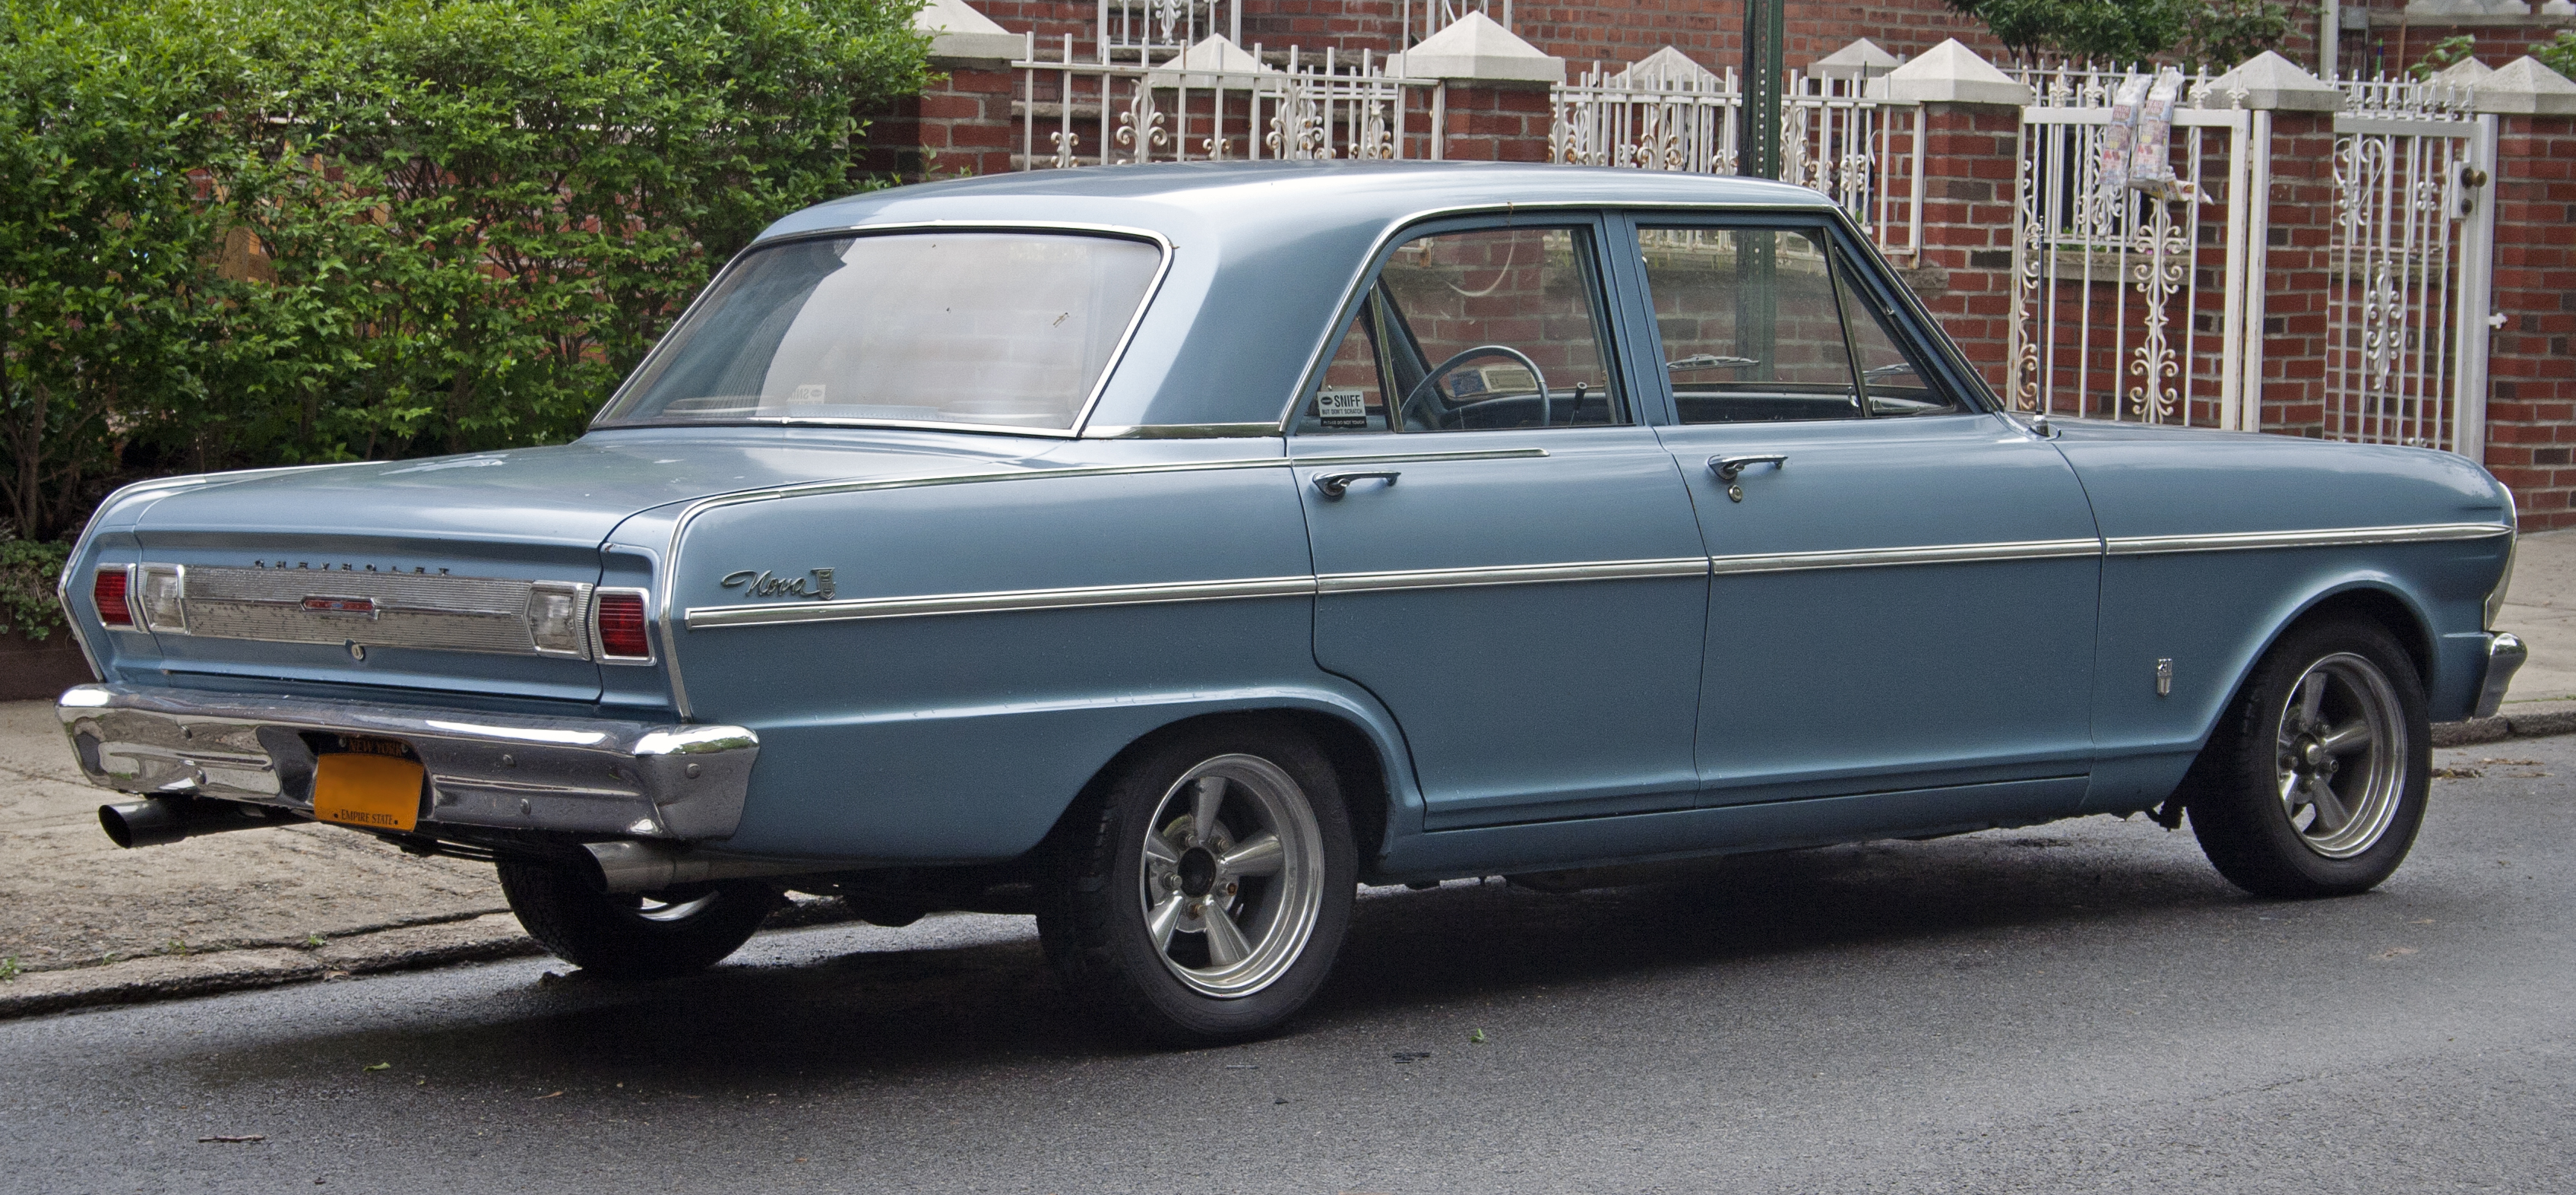 1965 Chevrolet Nova Information And Photos Momentcar